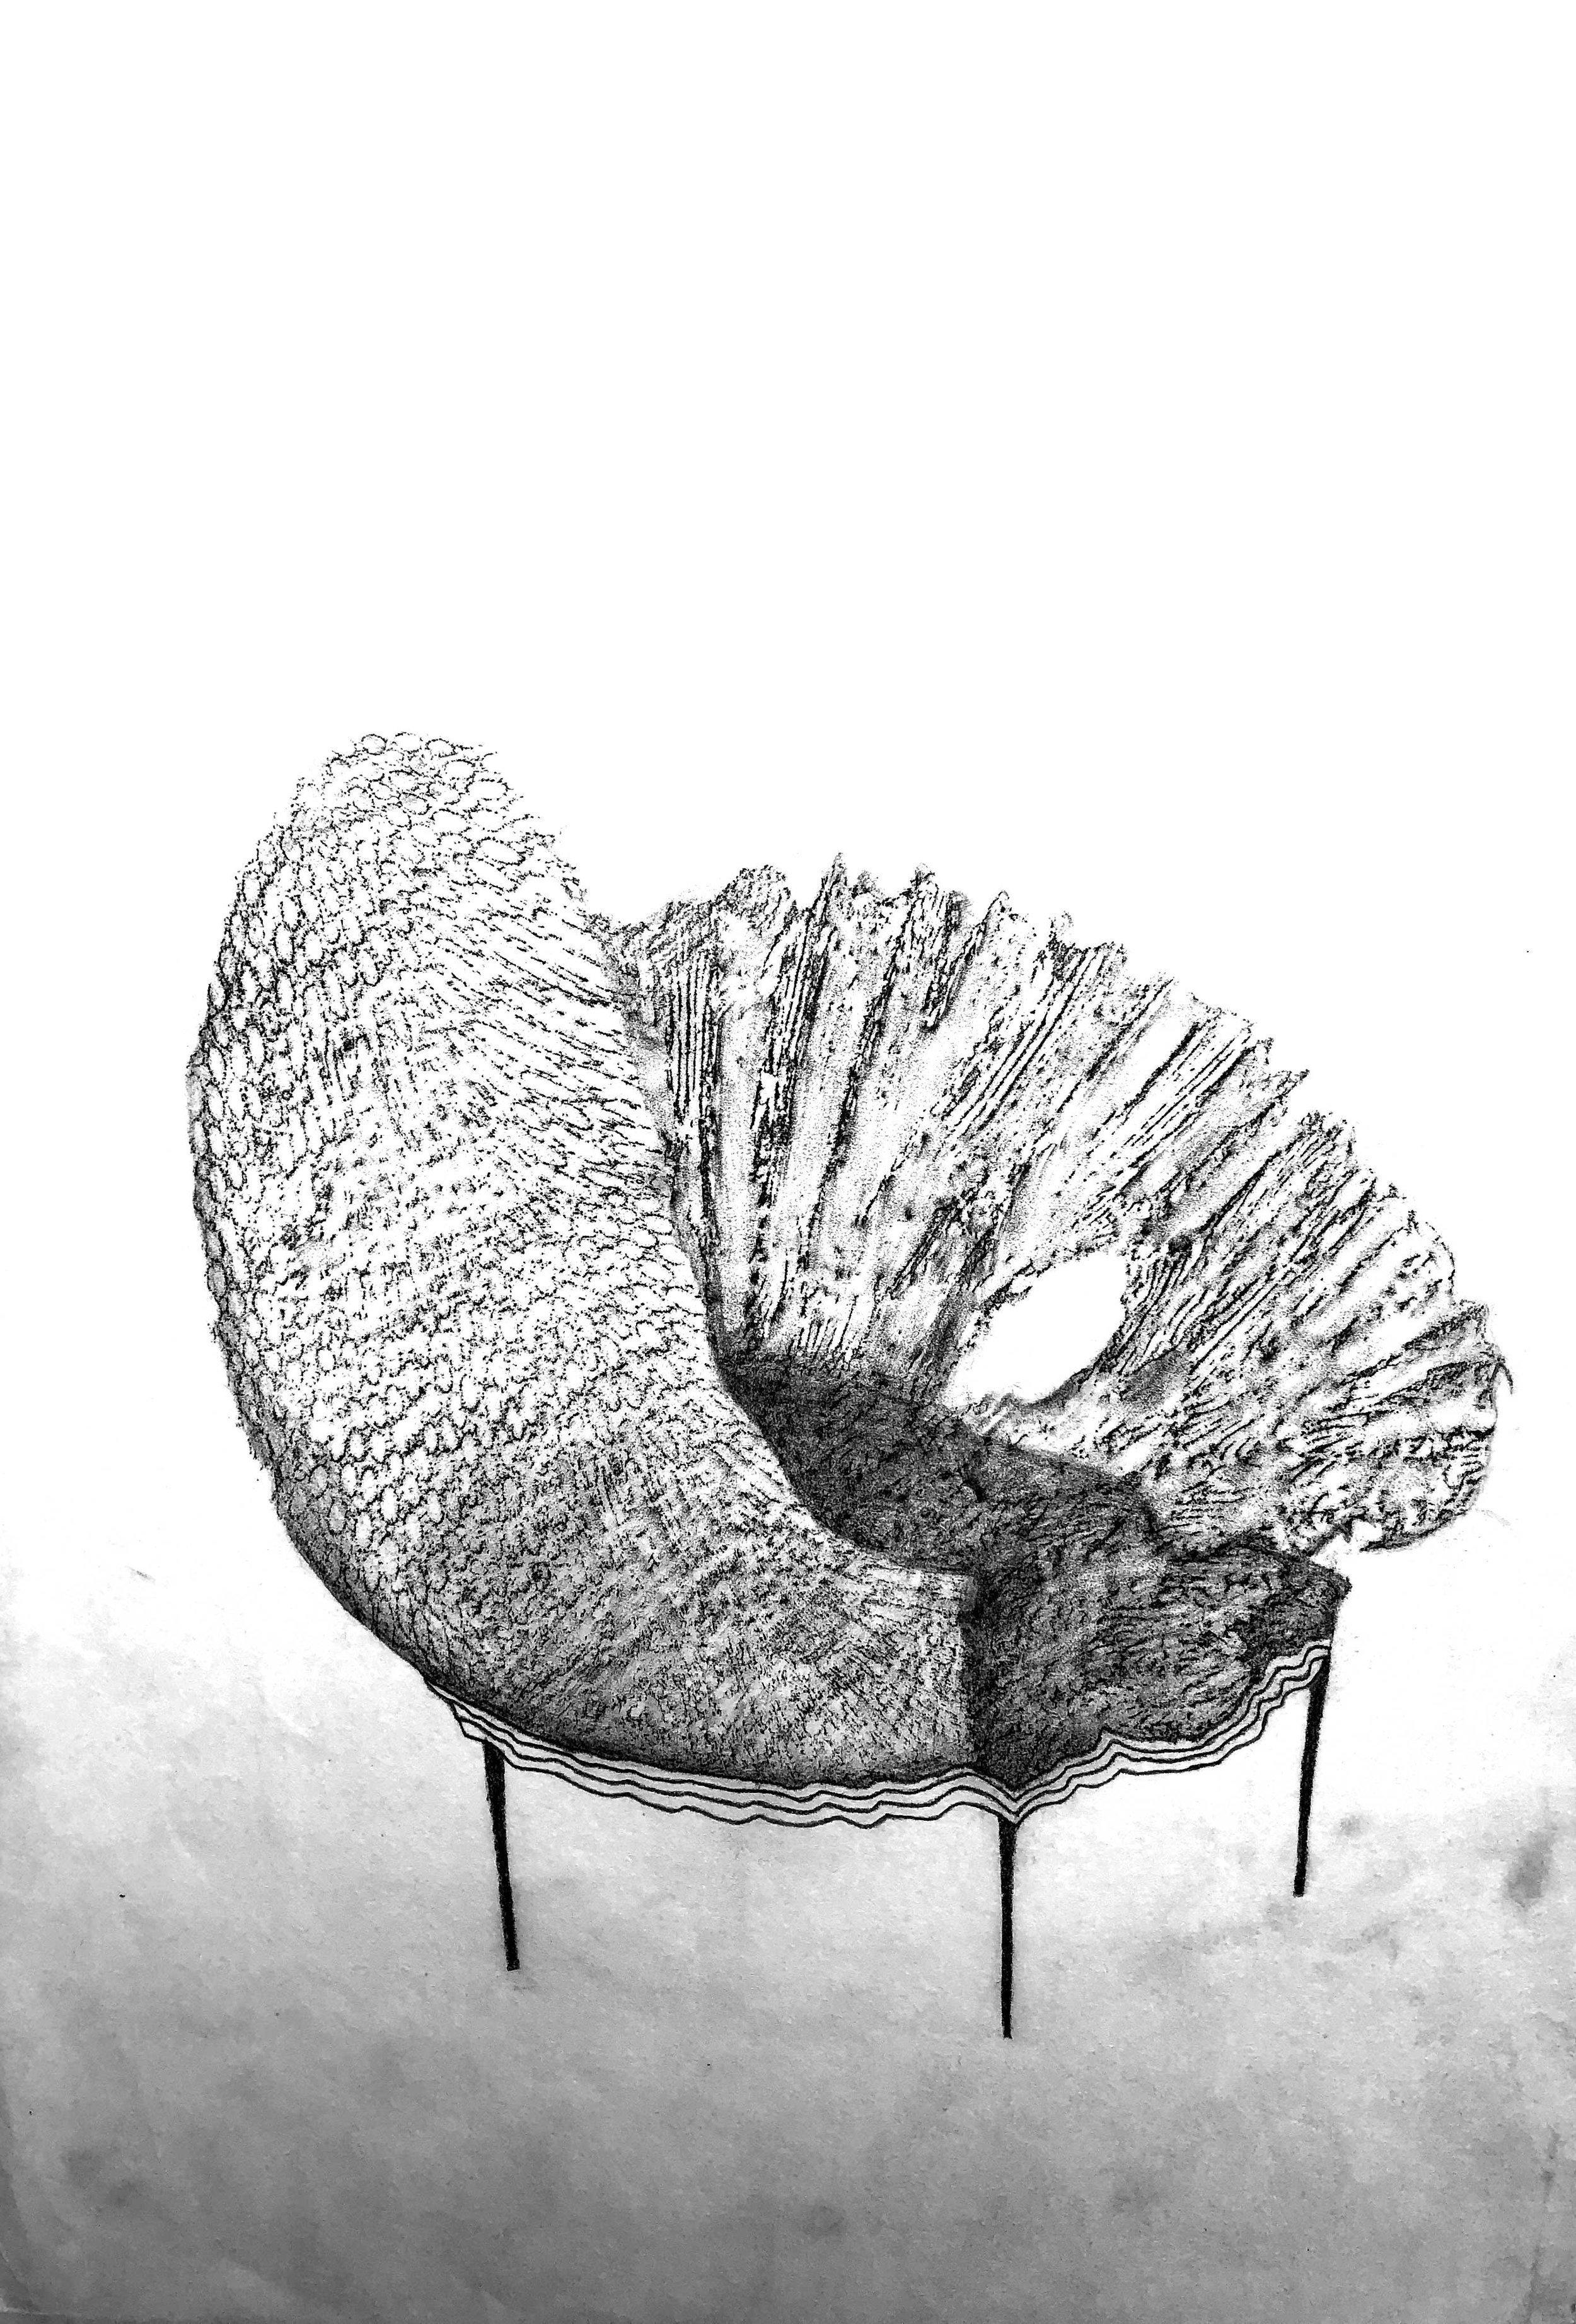 Clam chair. Charcol and pencil on rice paper. 26x37cm